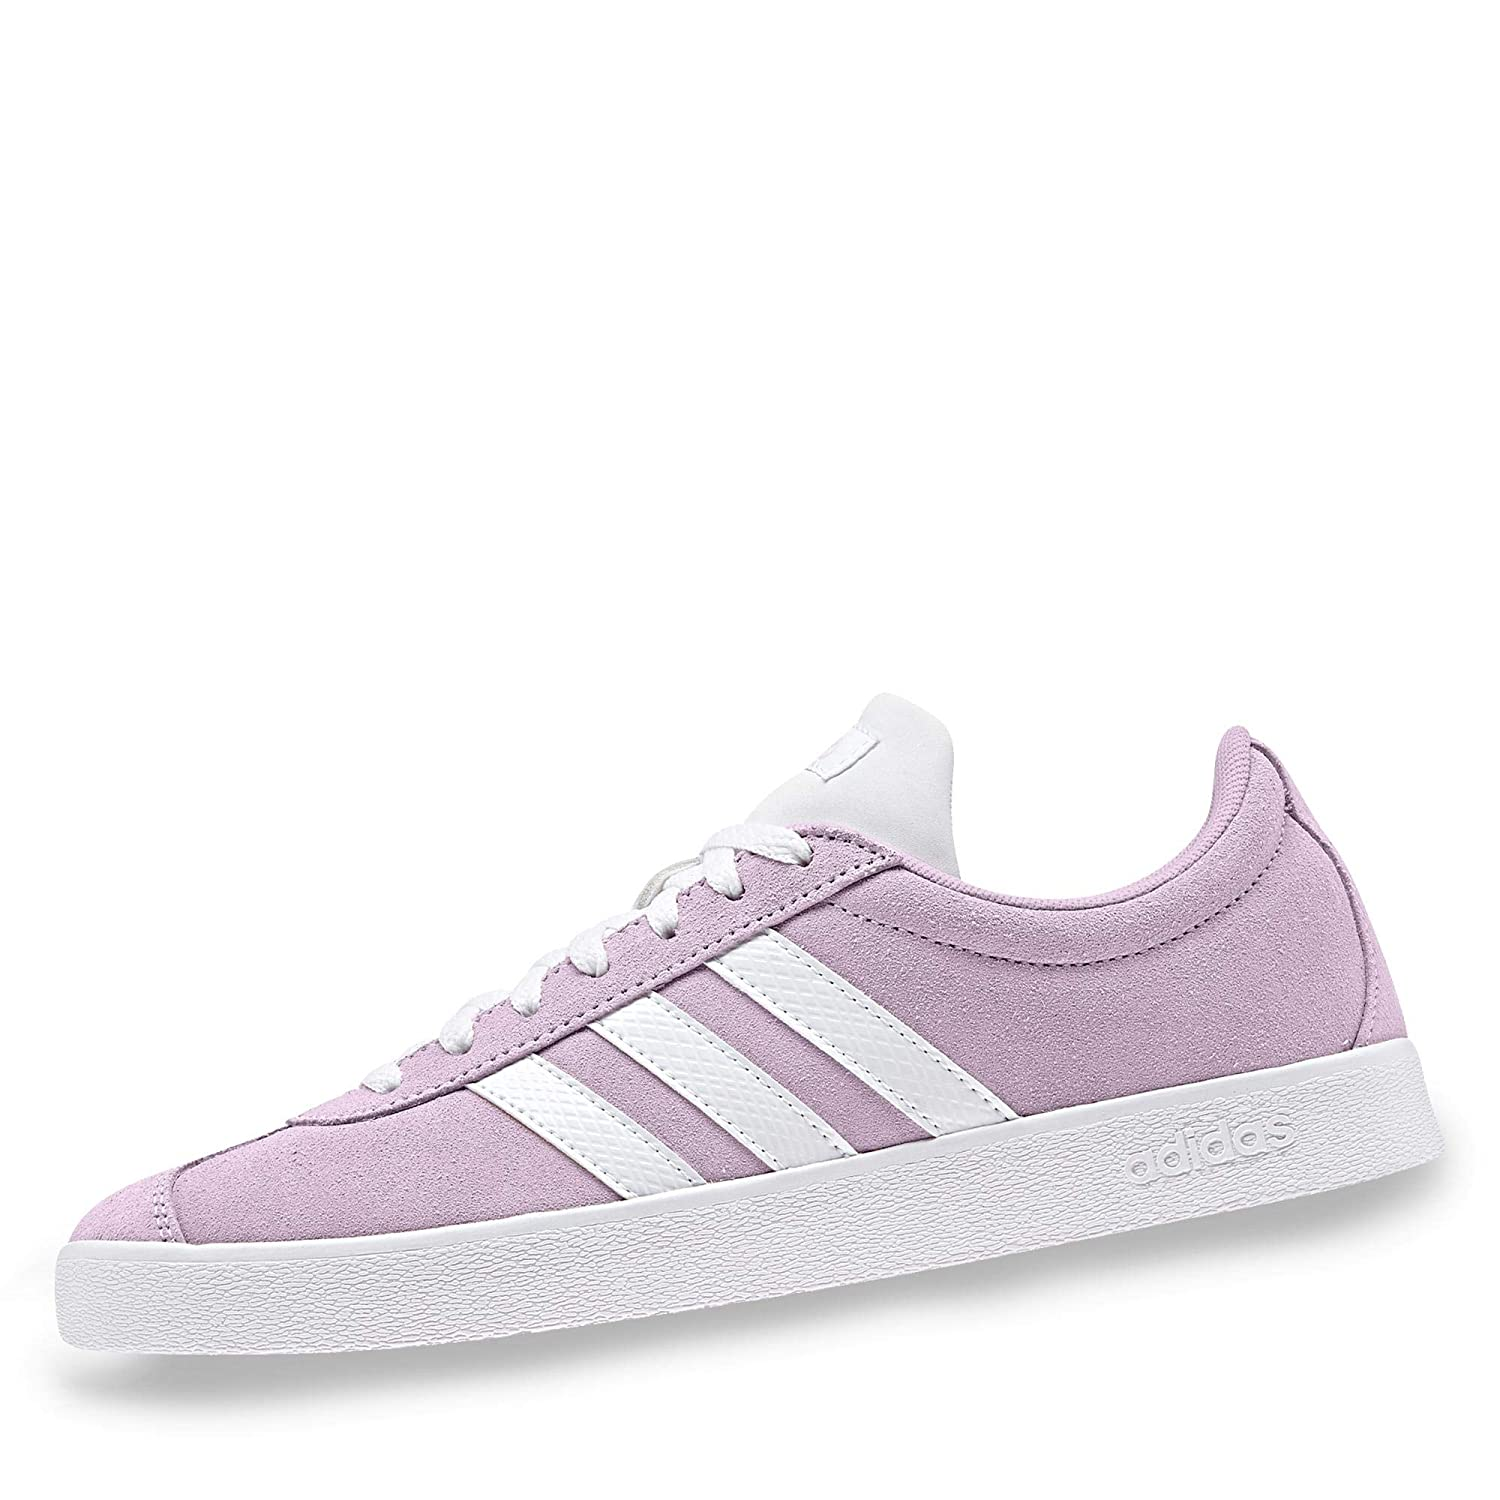 wholesale dealer b4f6f 9ae41 Adidas VL Court 2.0, Scarpe da Fitness Fitness Fitness Donna B07L3BG8GZ 36  EU rosa (Aerorr)   Outlet Online ...